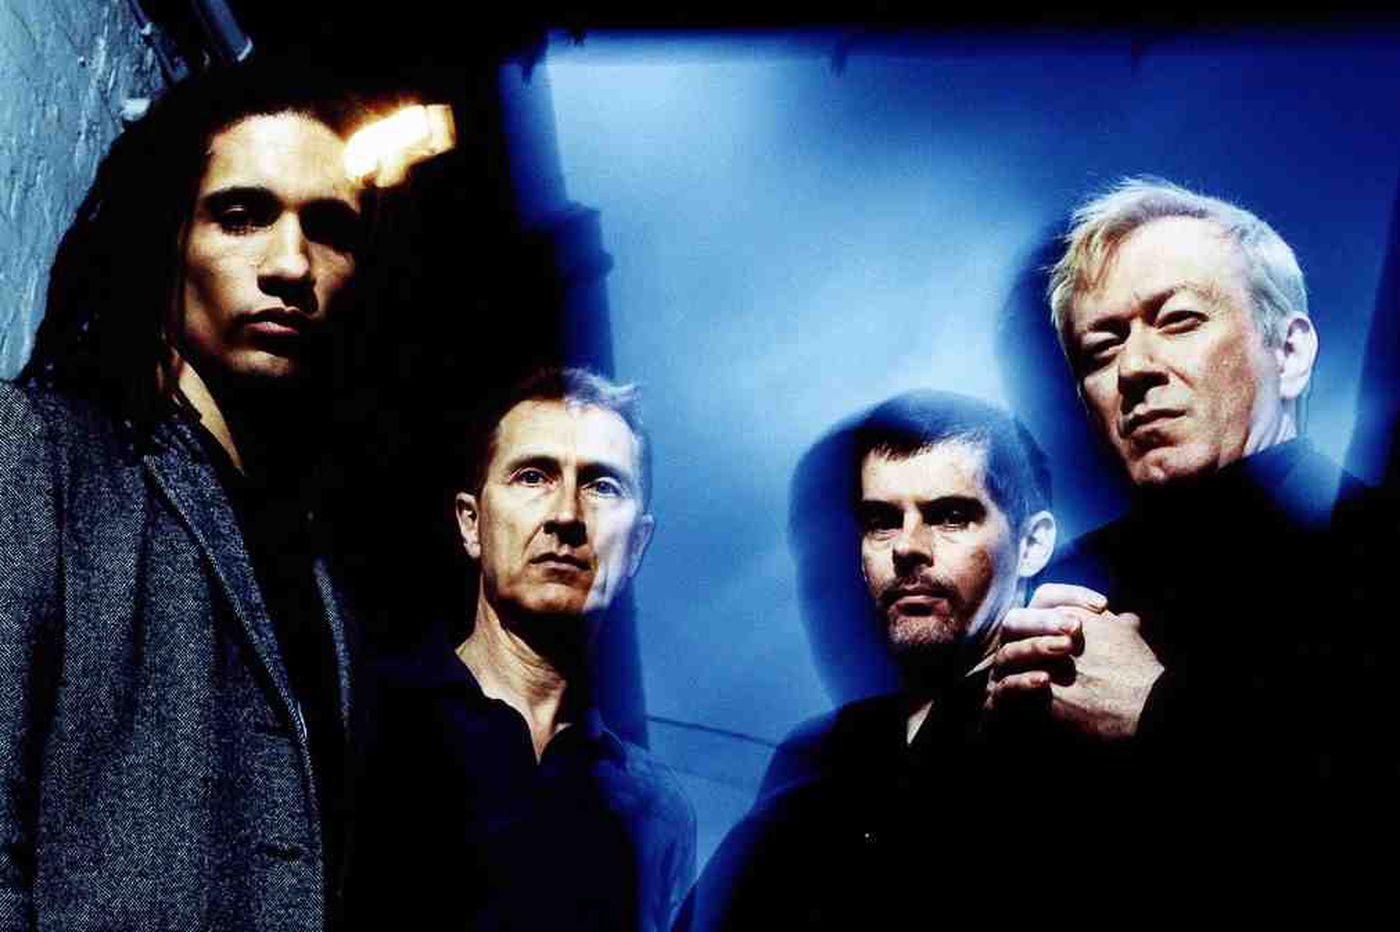 Gang of Four returns, in good form